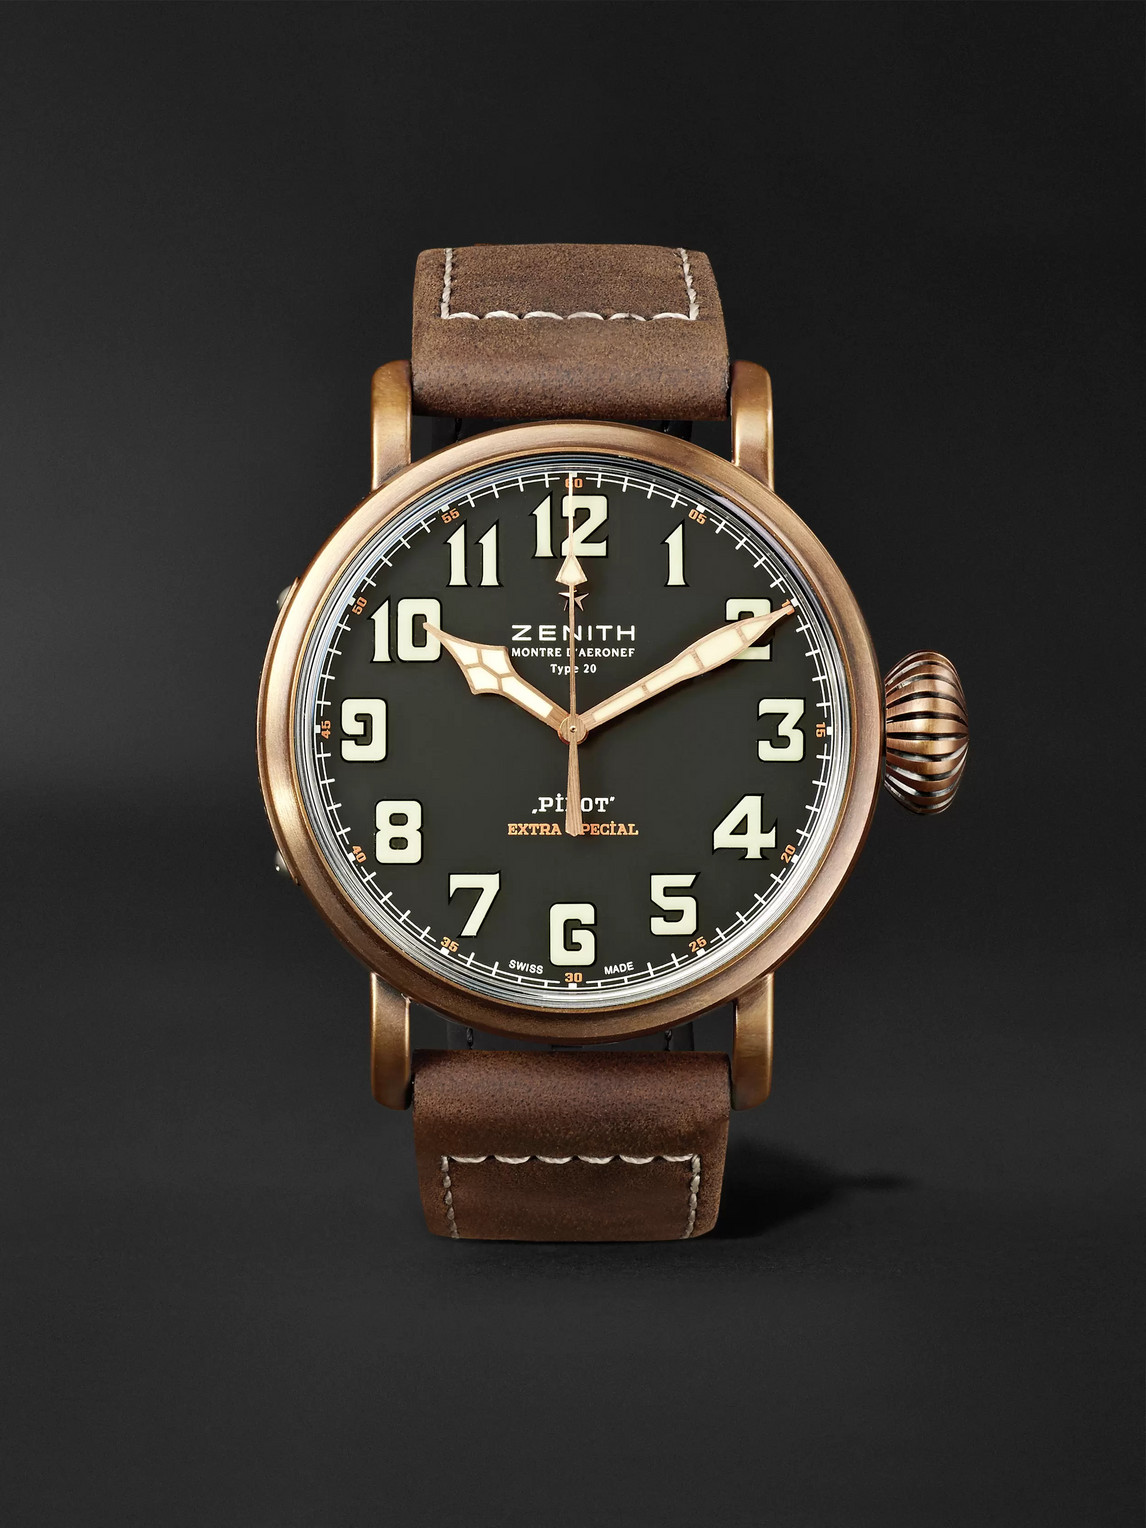 Zenith Pilot Type 20 Extra Special 45mm Bronze And Nubuck Watch, Ref. No. 29.2430.679/21.c753 In Nero